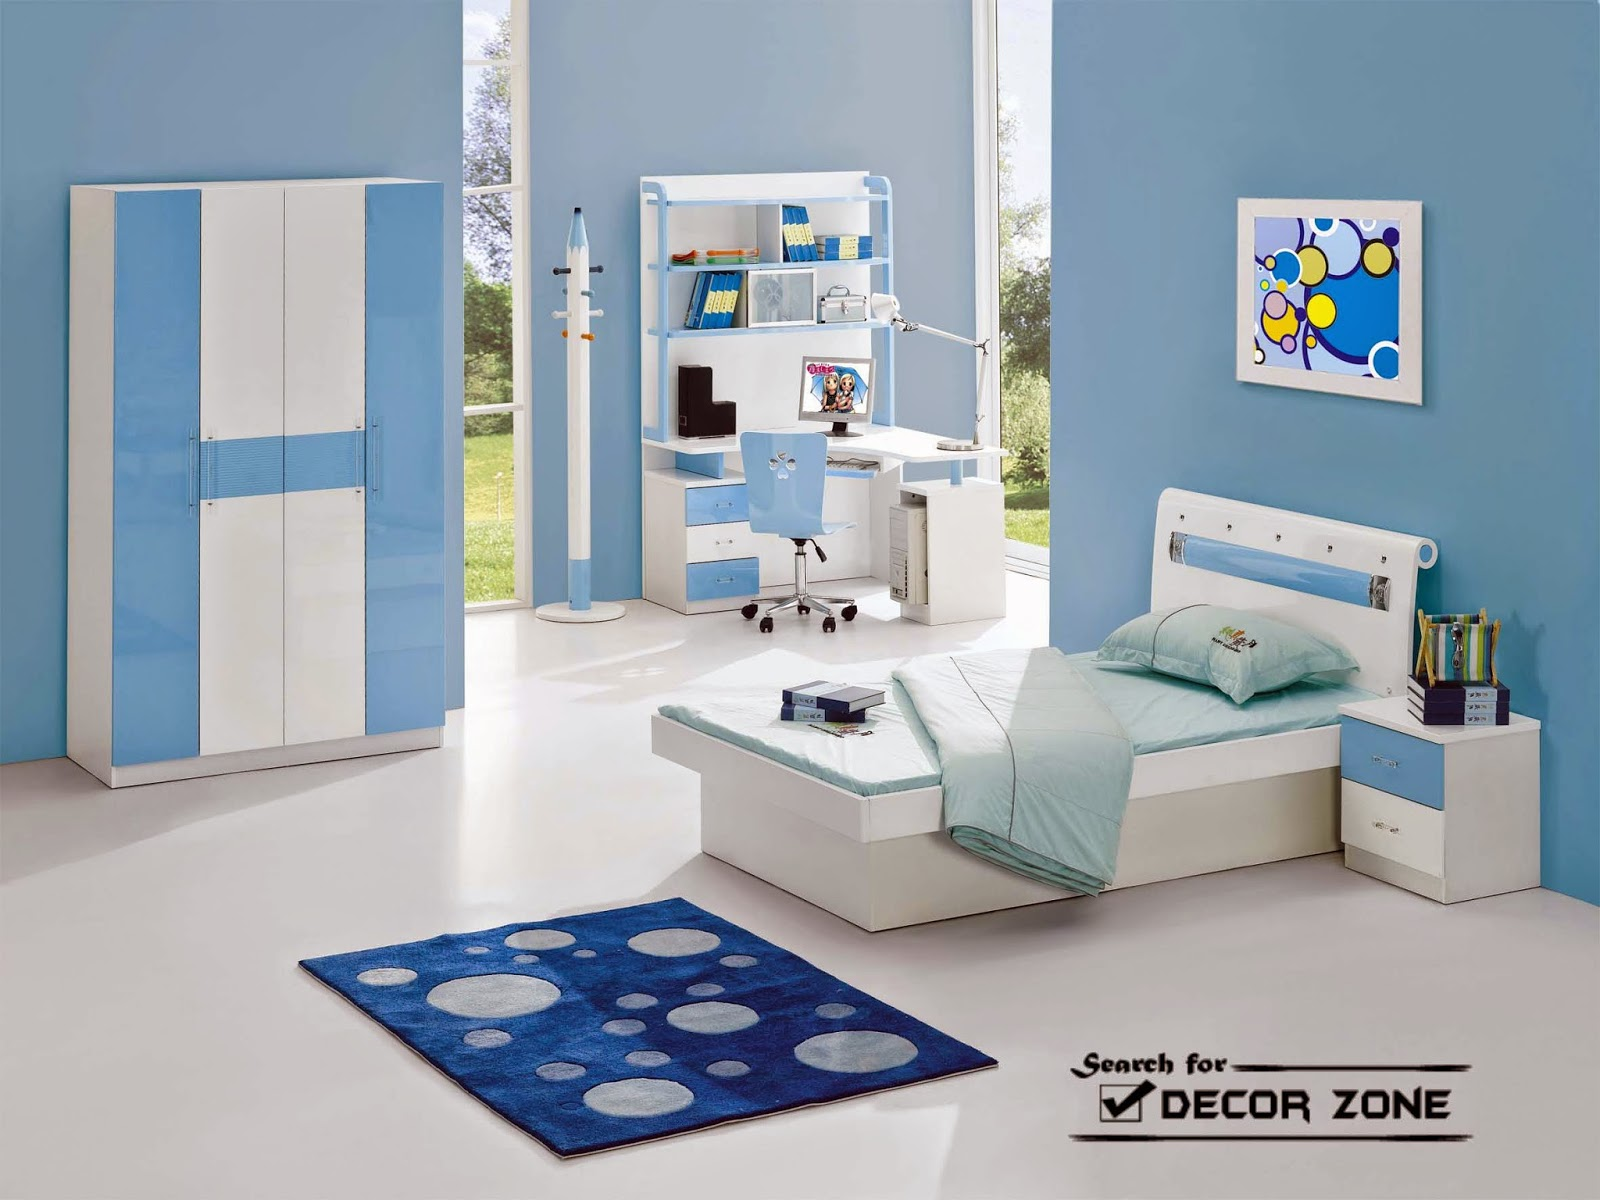 Bedroom Design Blue Best 25 Blue bedrooms ideas on Pinterest Blue